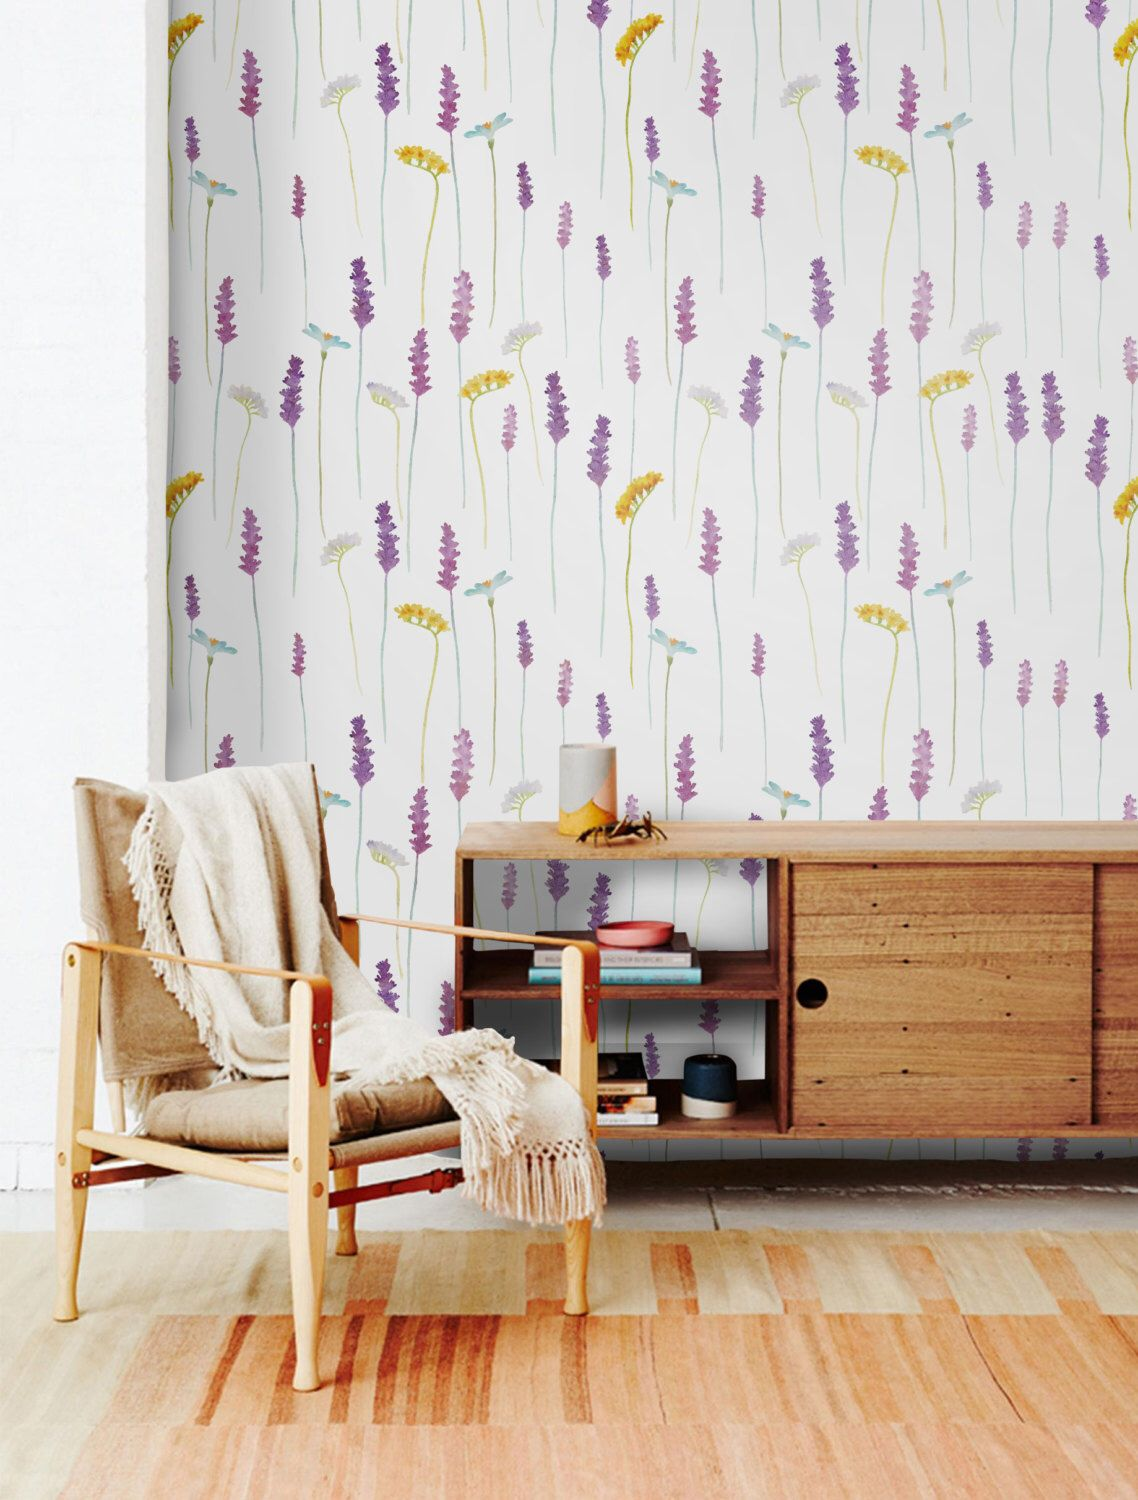 Lavender Removable Wallpaper Peel And Stick Watercolor Etsy Lavender Walls Removable Wallpaper Wall Murals